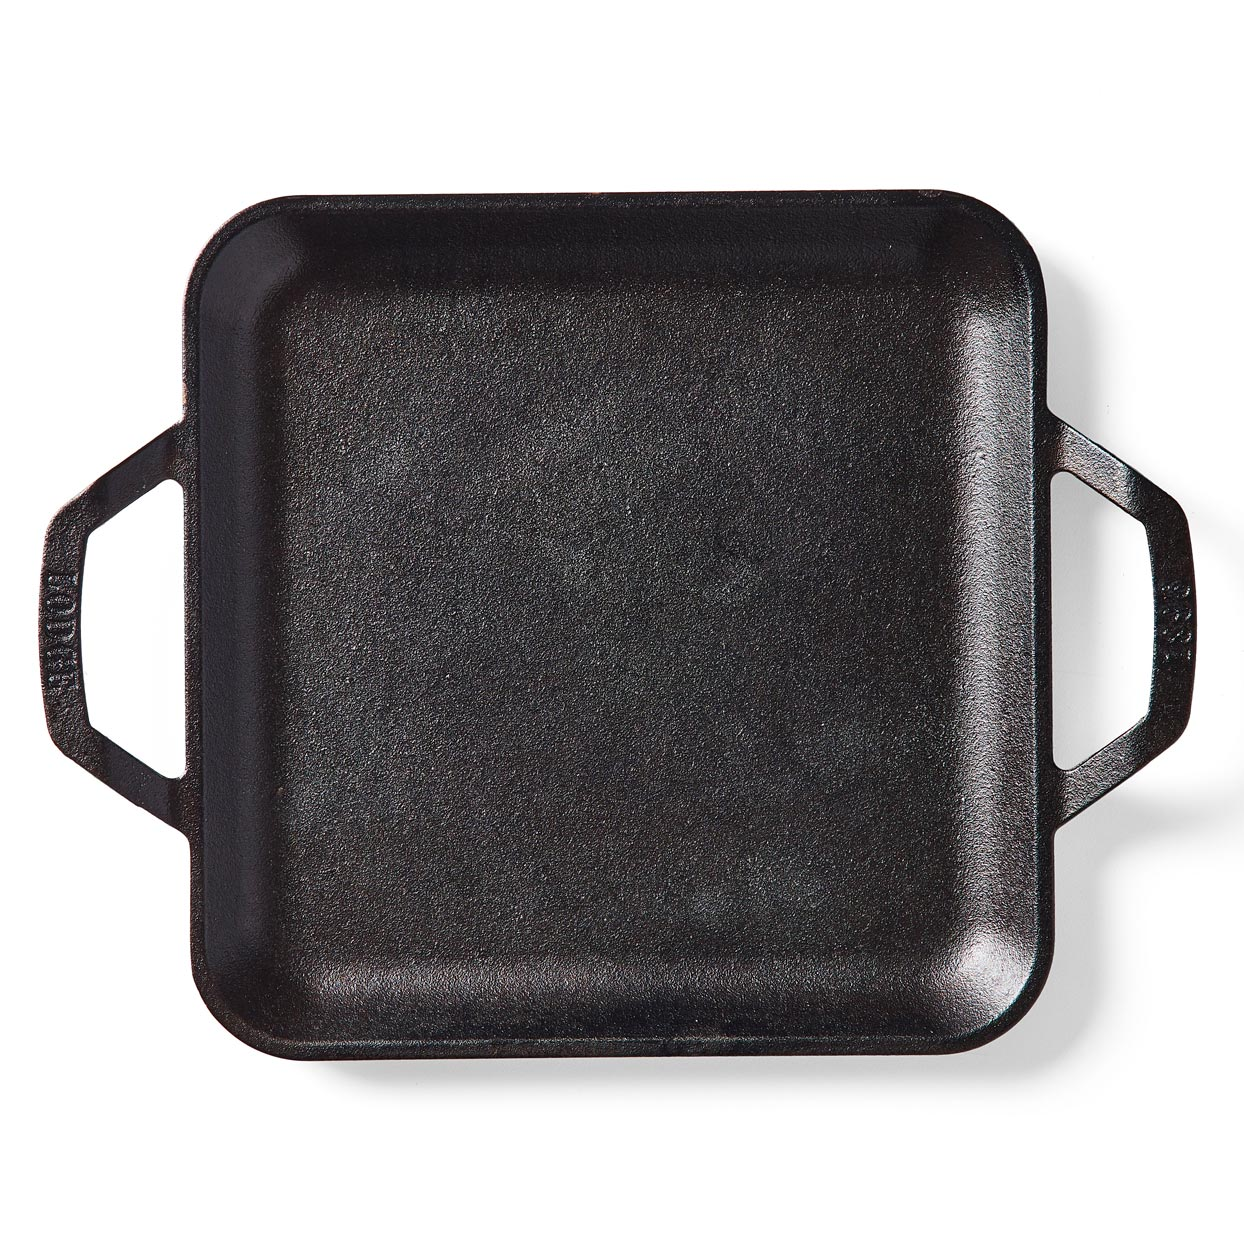 Lodge's 11-inch Cast-Iron Griddle